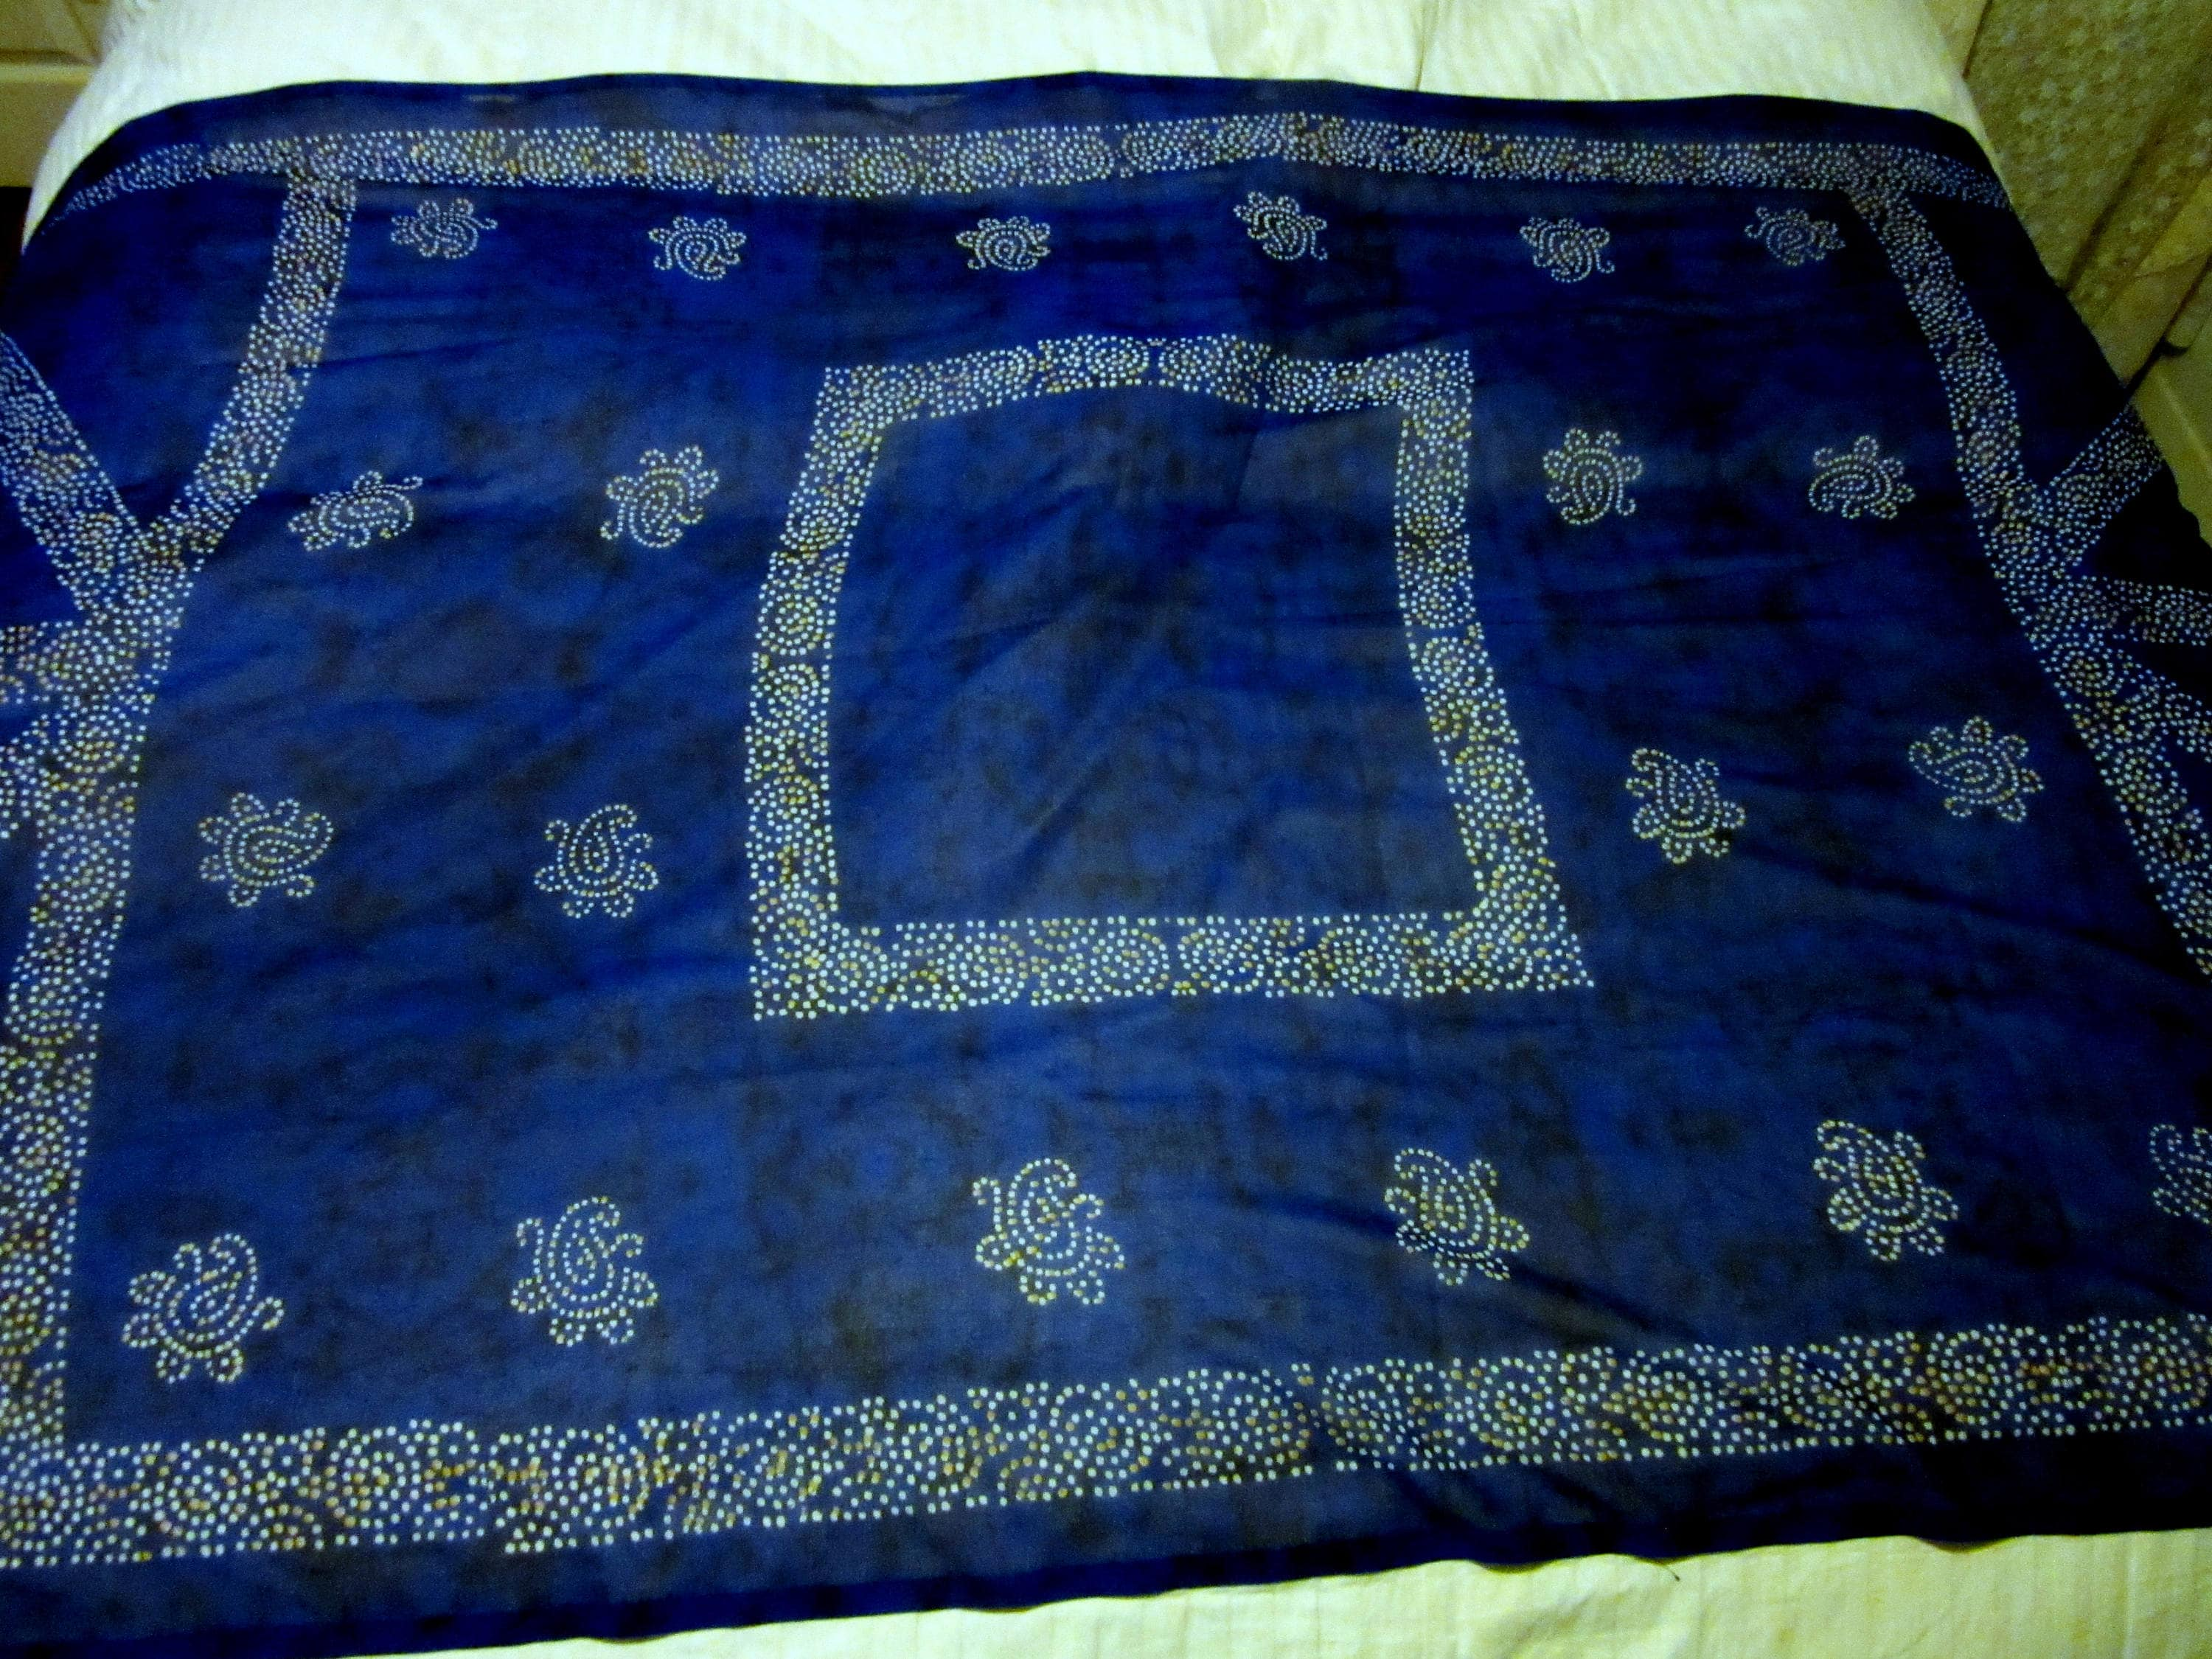 Sheer Poly Chiffon Dark Cobalt Blue Paisley Geometric Print 84 X 42 Inches Tablecloth Bed